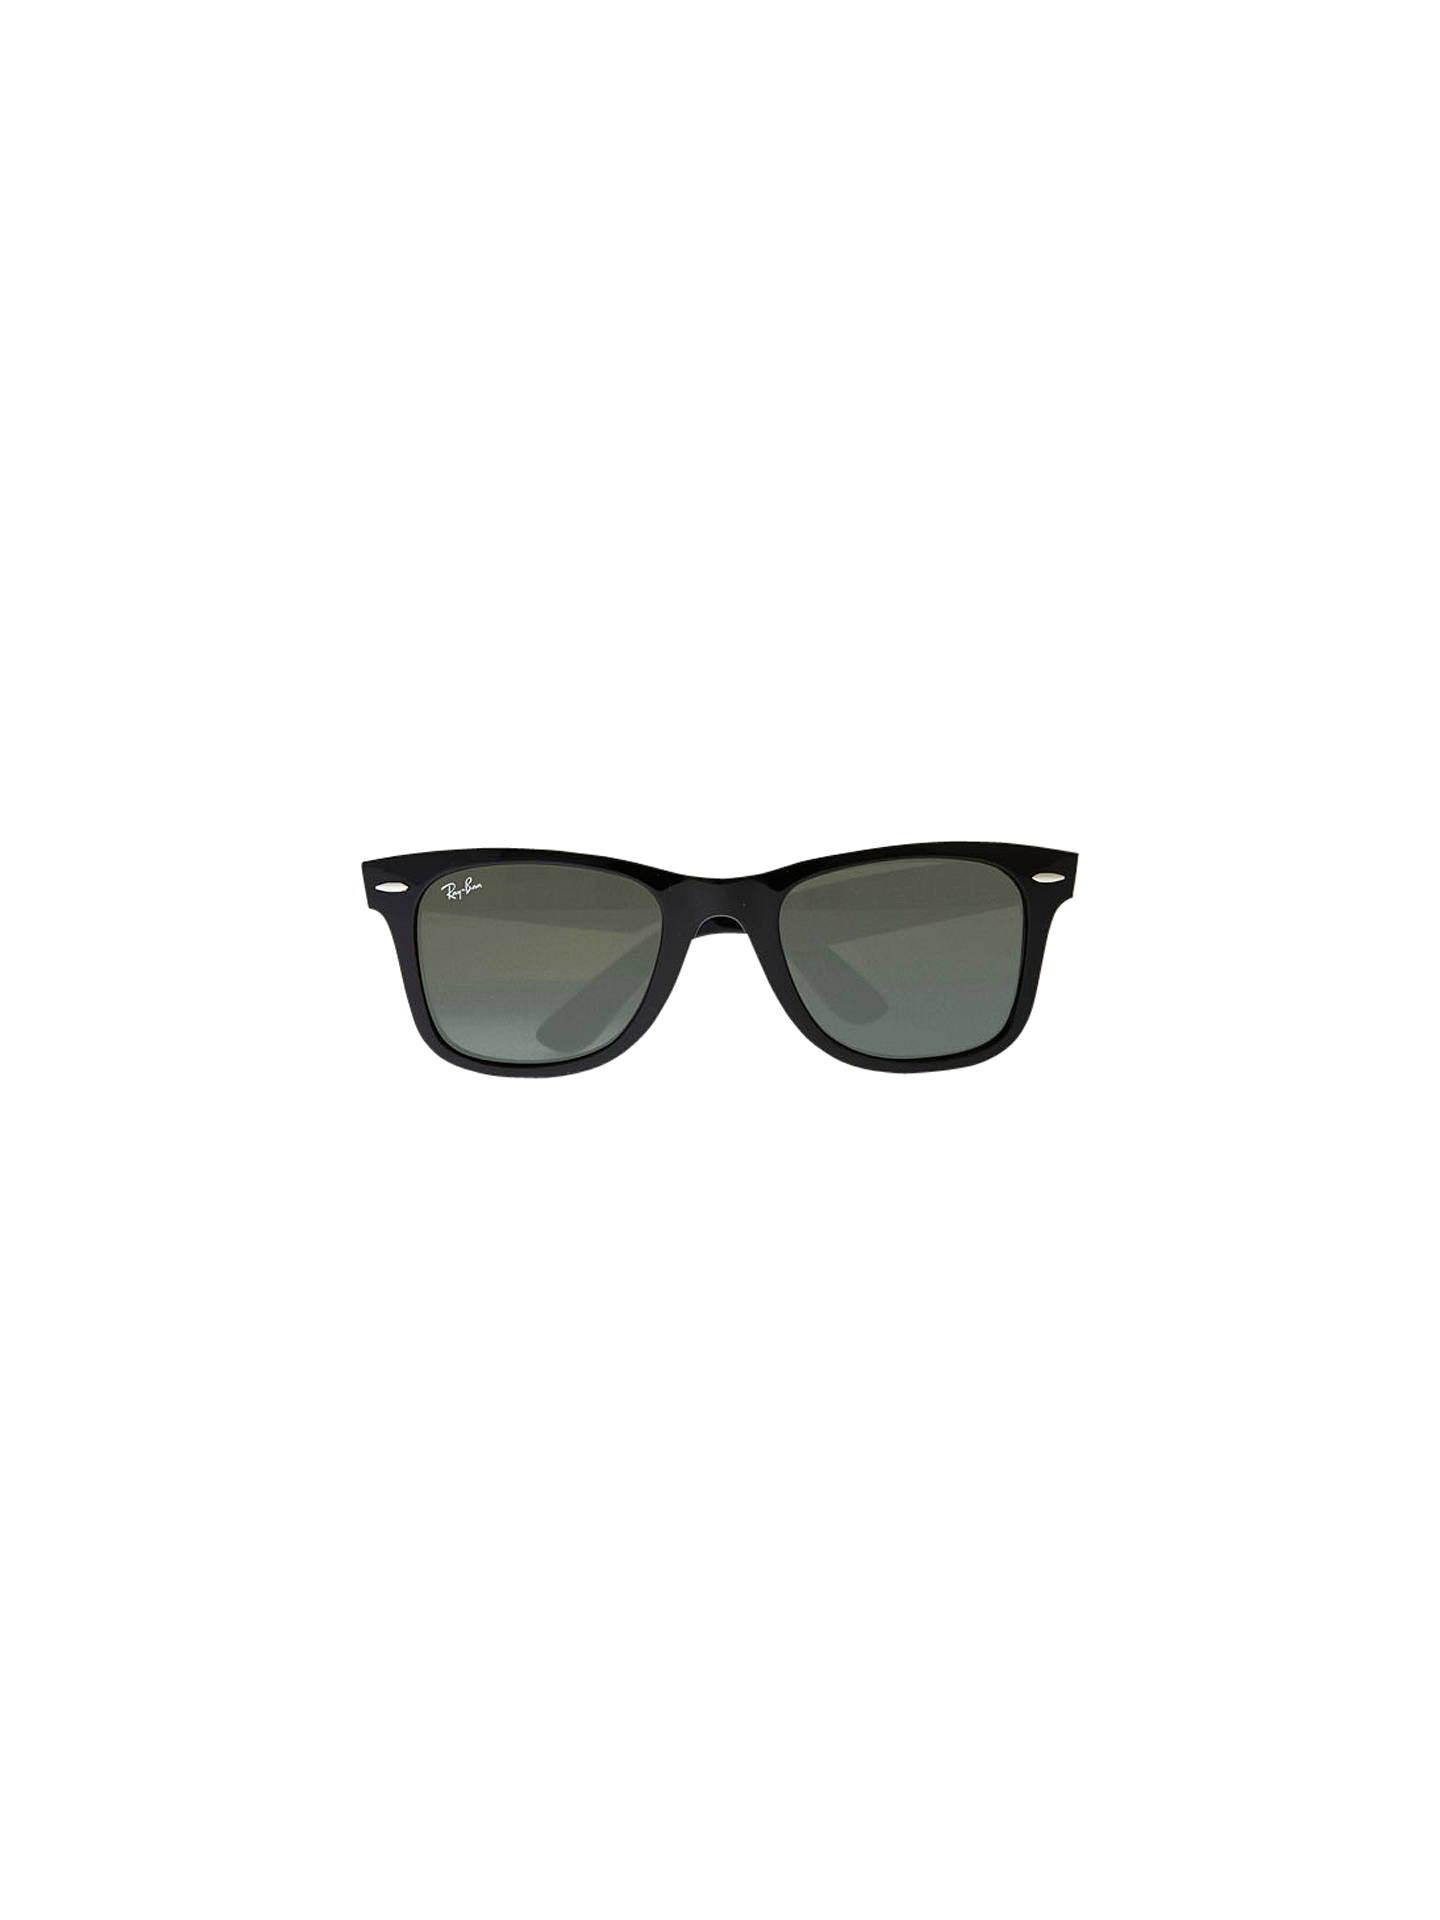 da111e95ec Ray-Ban RB2140 Original Wayfarer Sunglasses at John Lewis   Partners